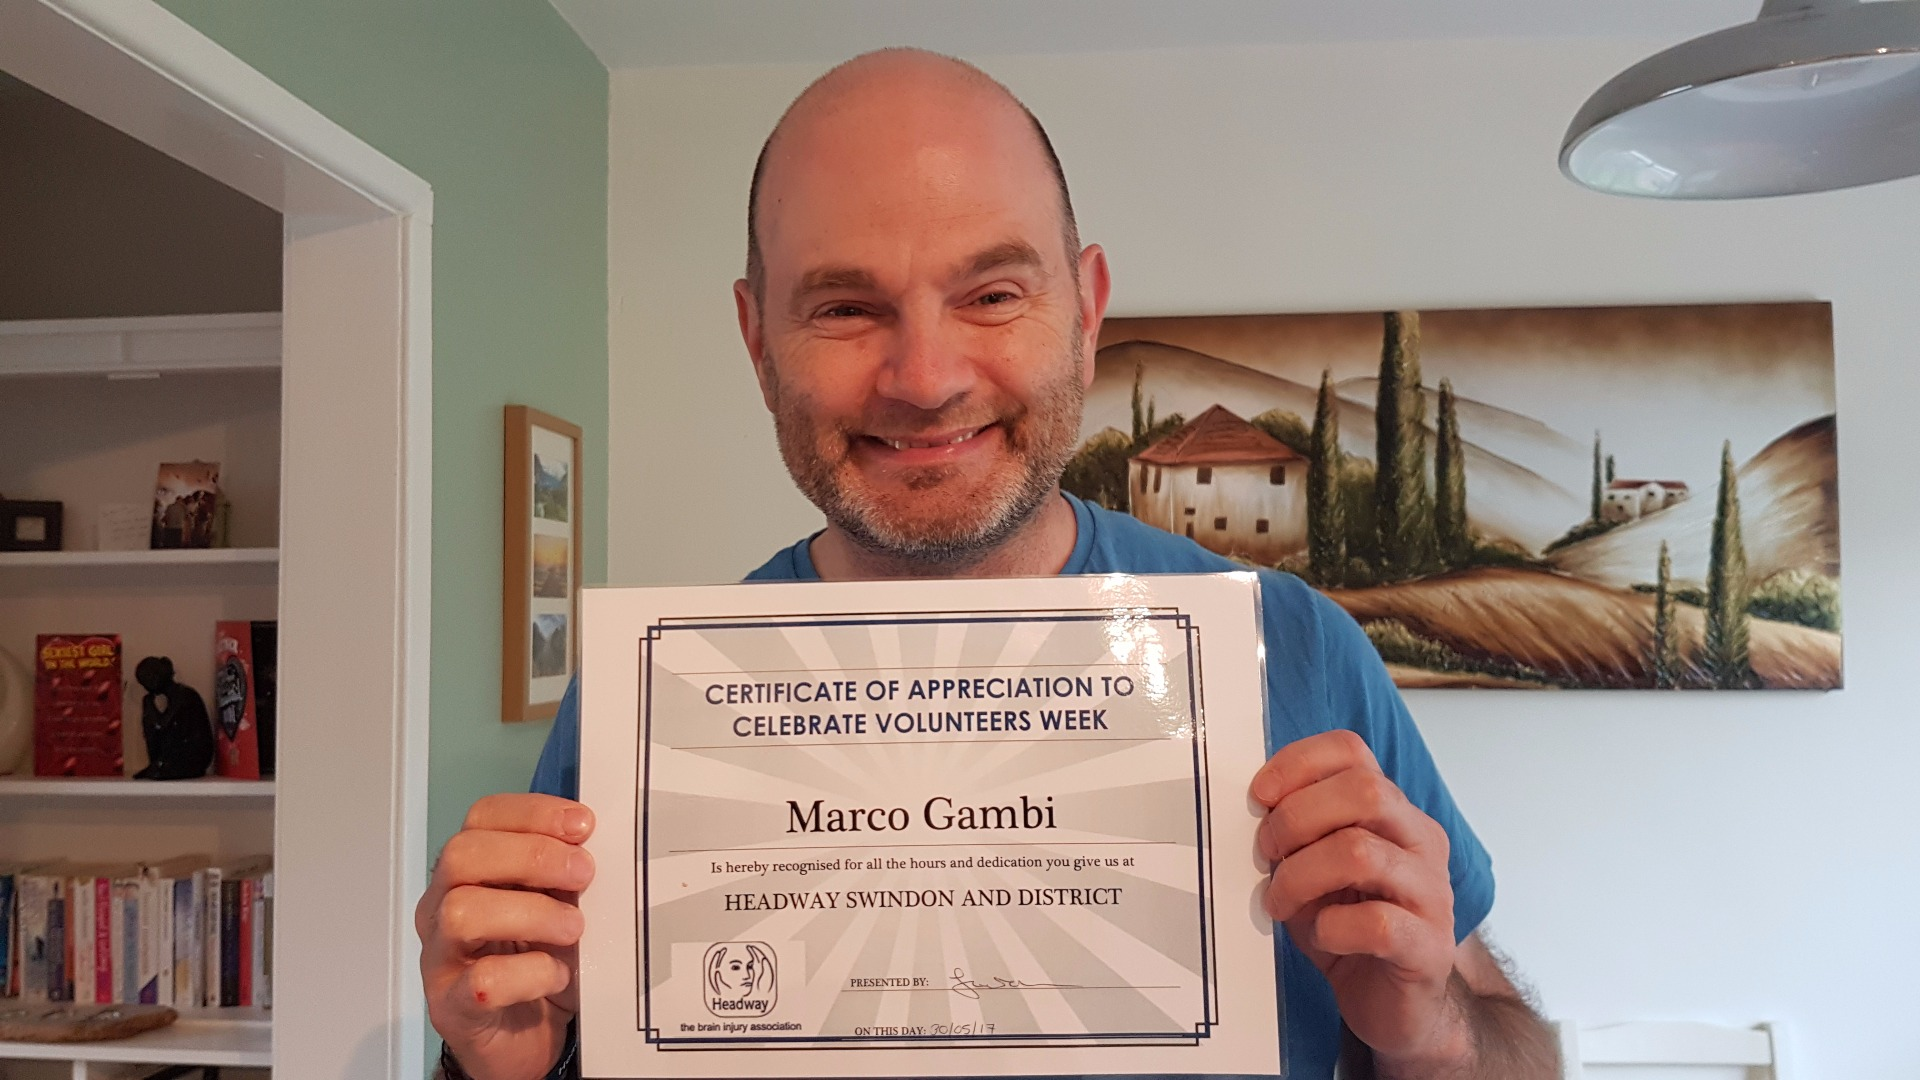 Marco was awarded for his volunteering with Headway Swindon